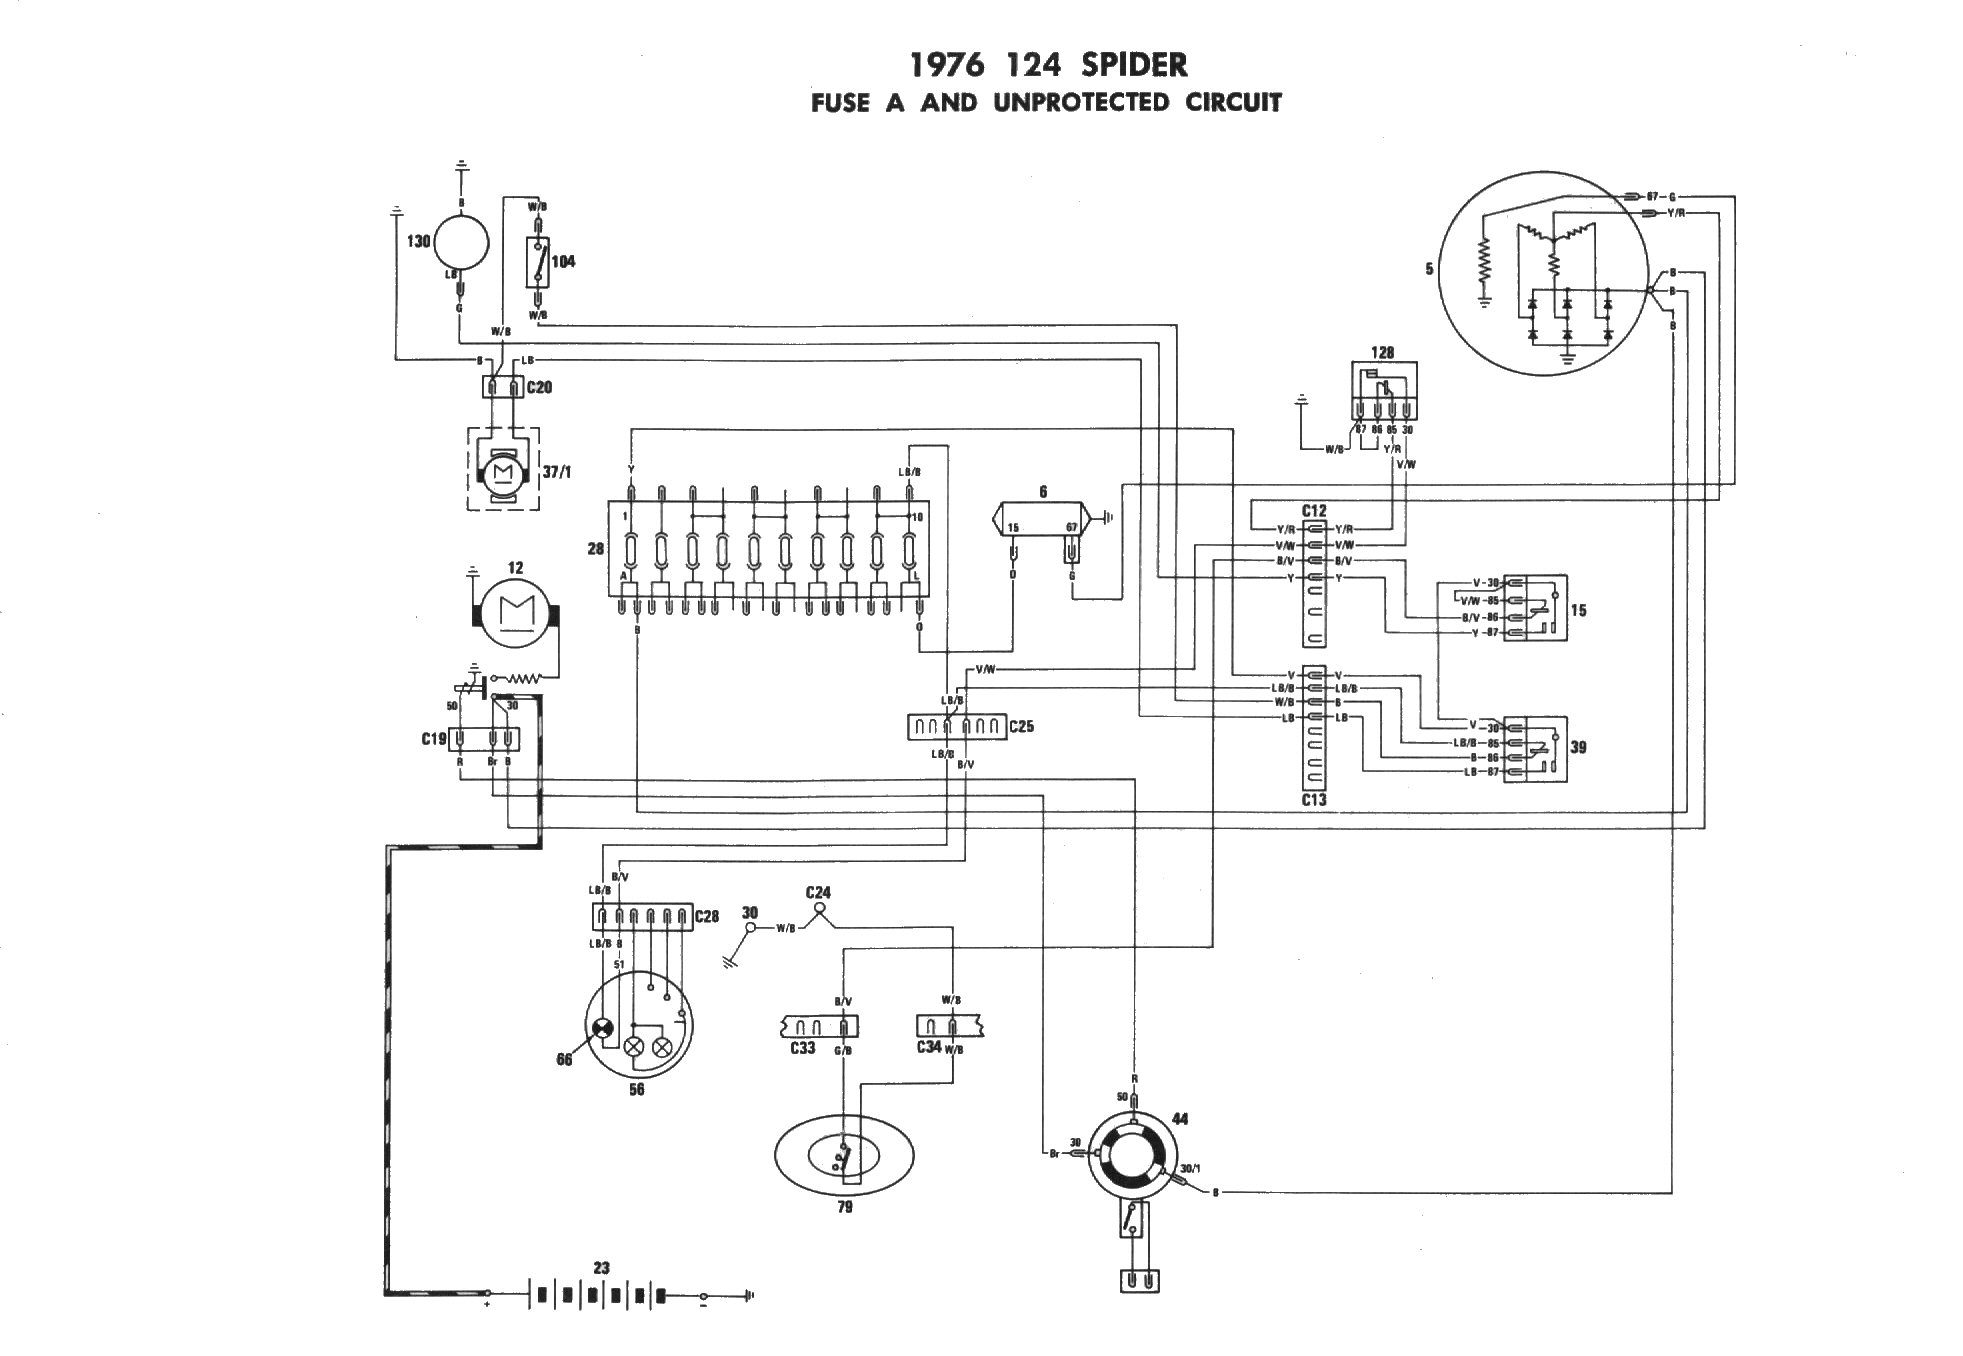 1977 fiat 124 spider wiring diagram  1977  free engine